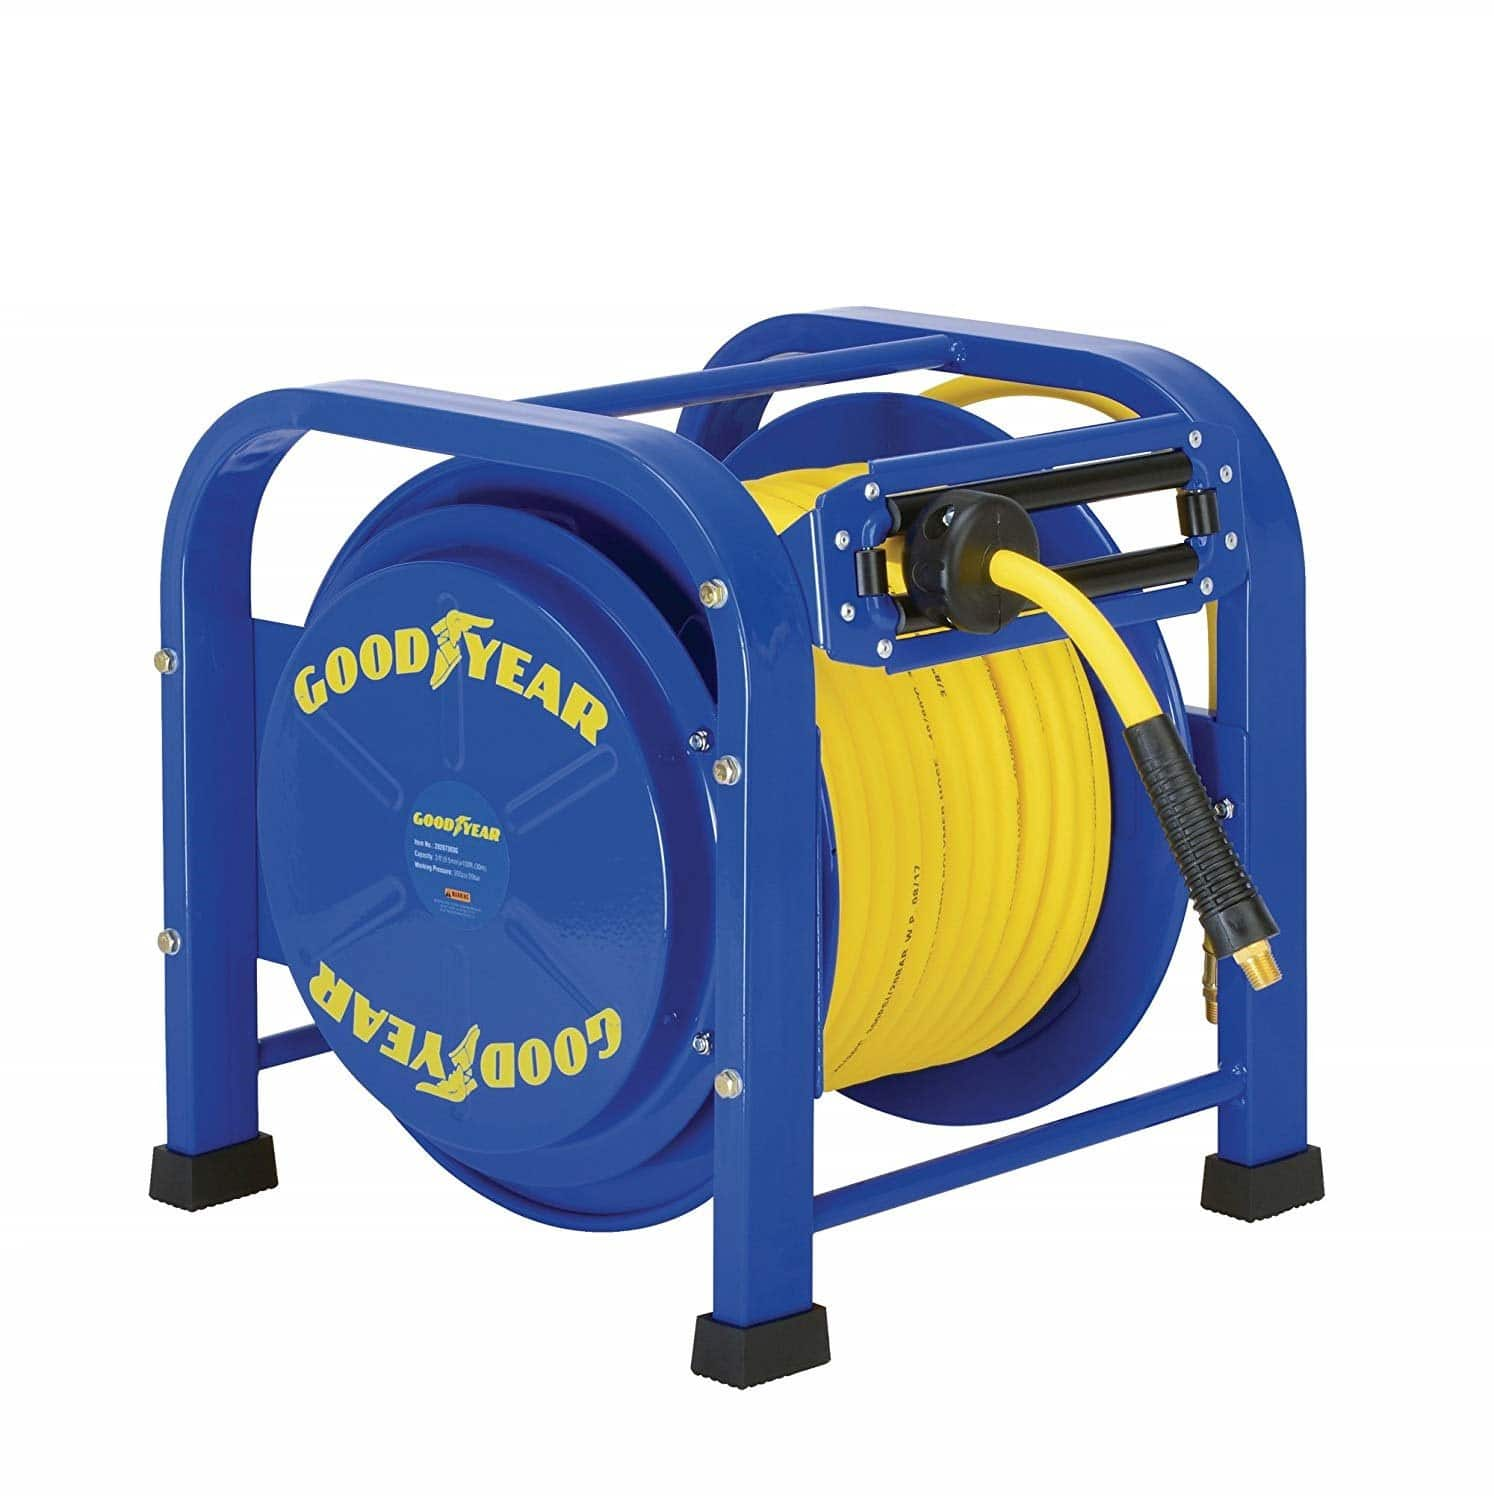 GOODYEAR Air / Water Hose Reel Retractable Spring Driven Steel Elite Portable Heavy Duty $152.99